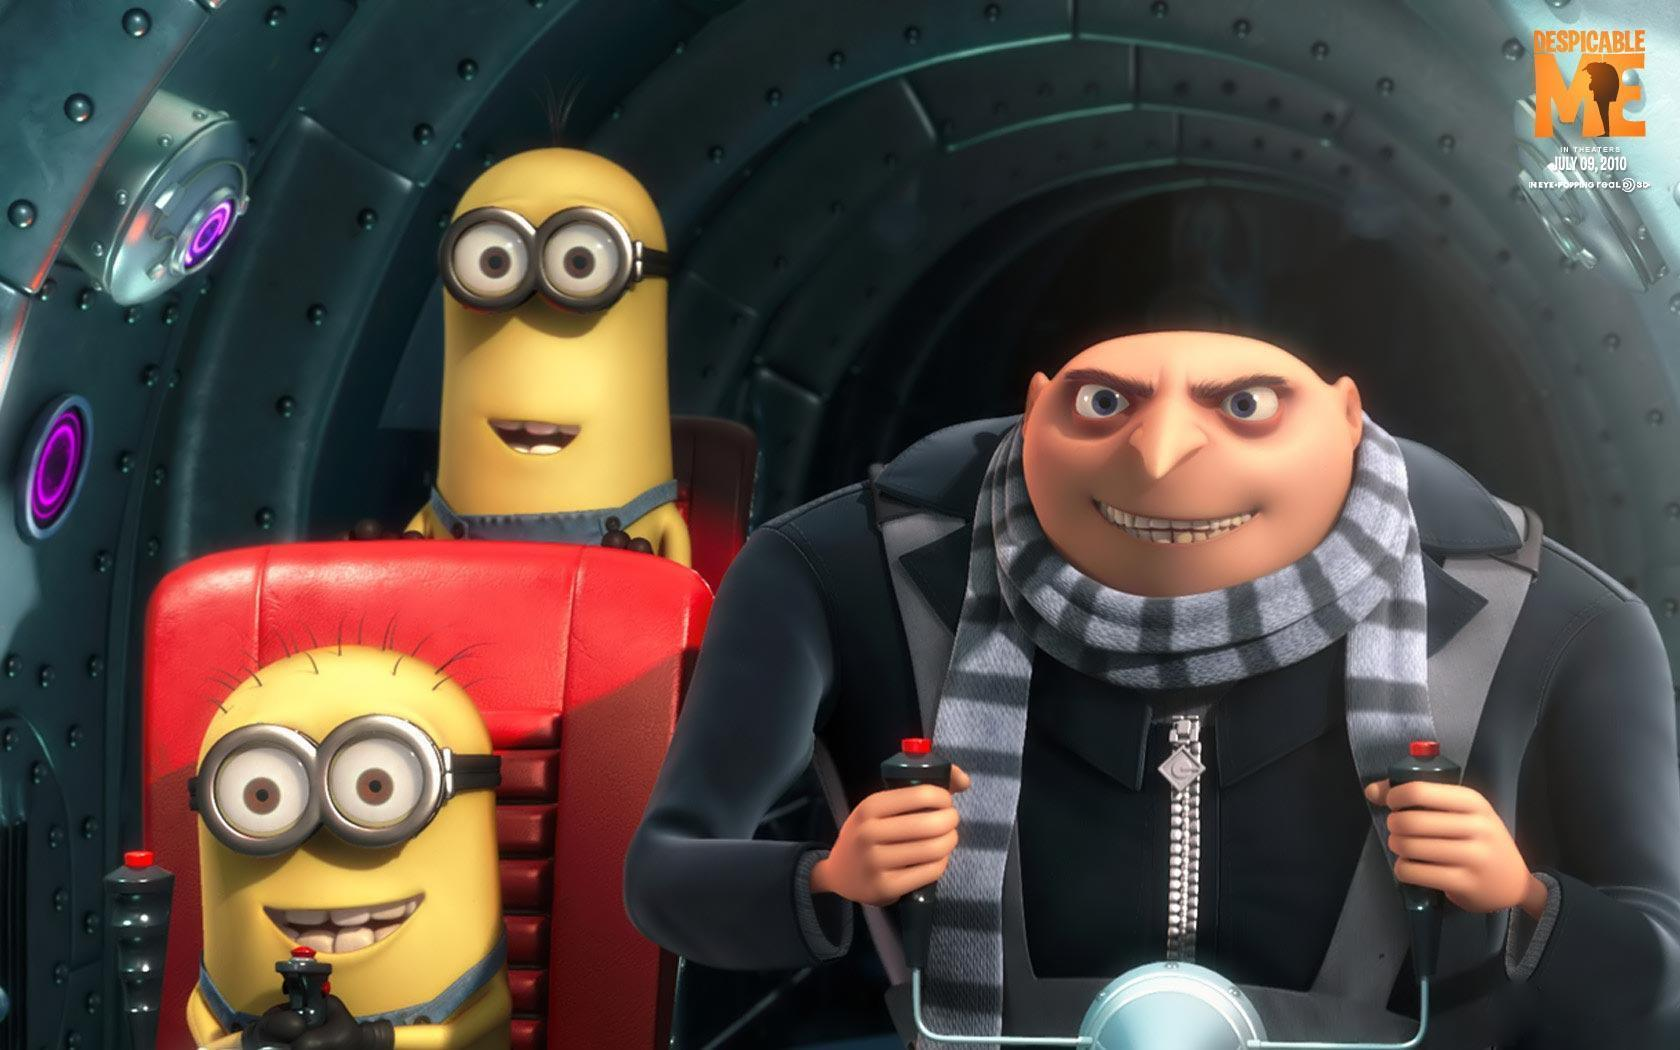 Desktop Wallpapers · Gallery · Cartoons · Despicable Me 3D animated